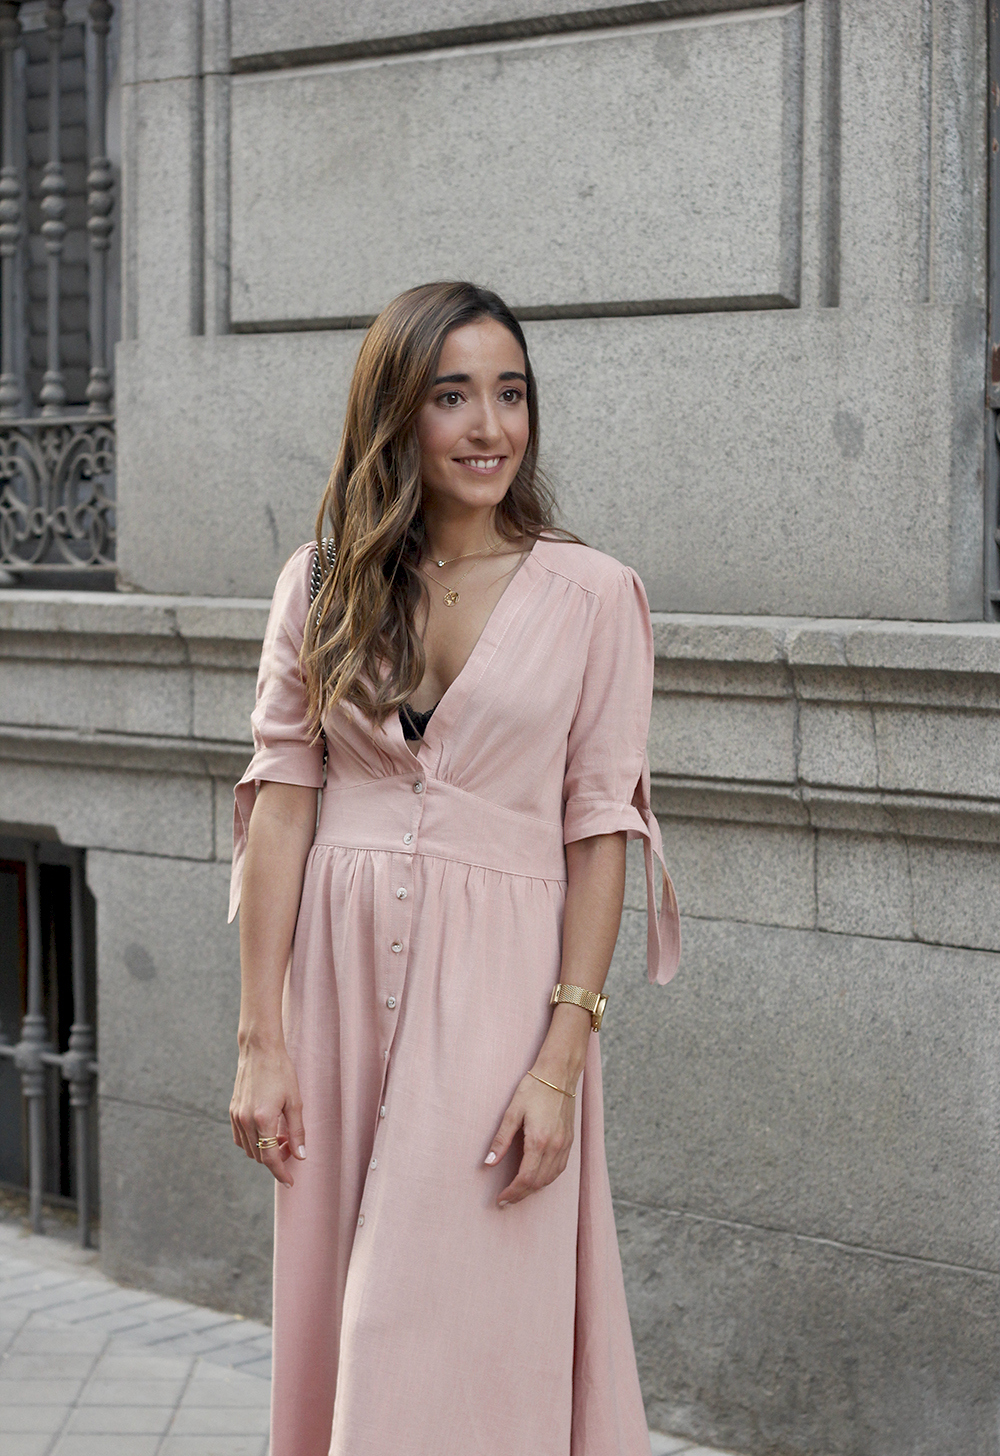 pink midi dress mules gucci bag outfit street style 201813